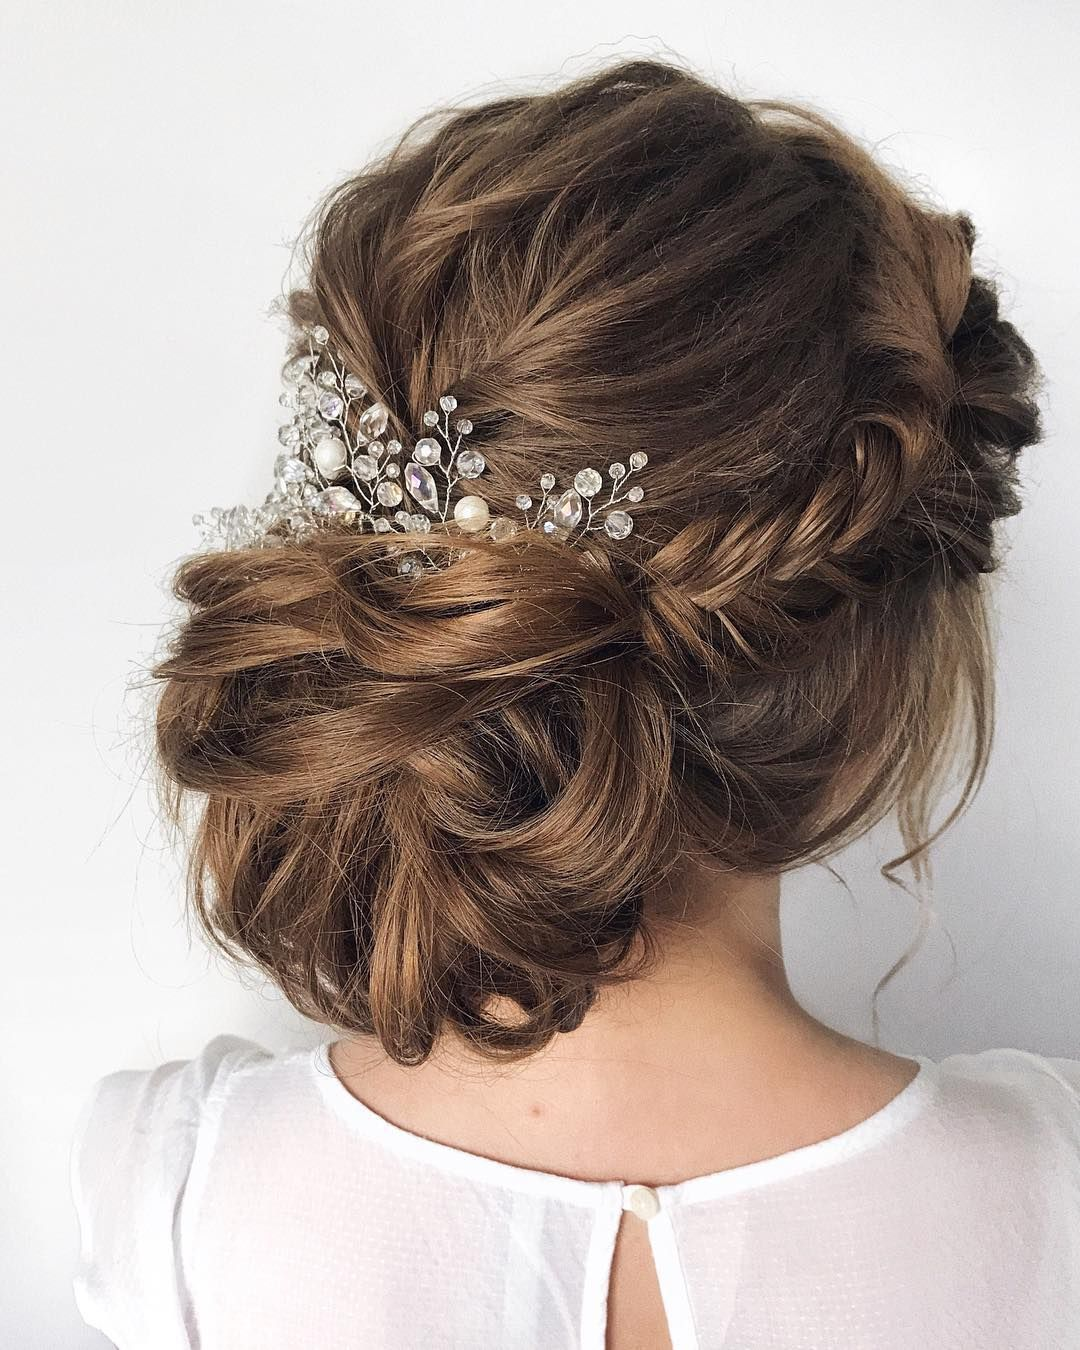 75 drop-dead gorgeous wedding hairstyles for a romantic